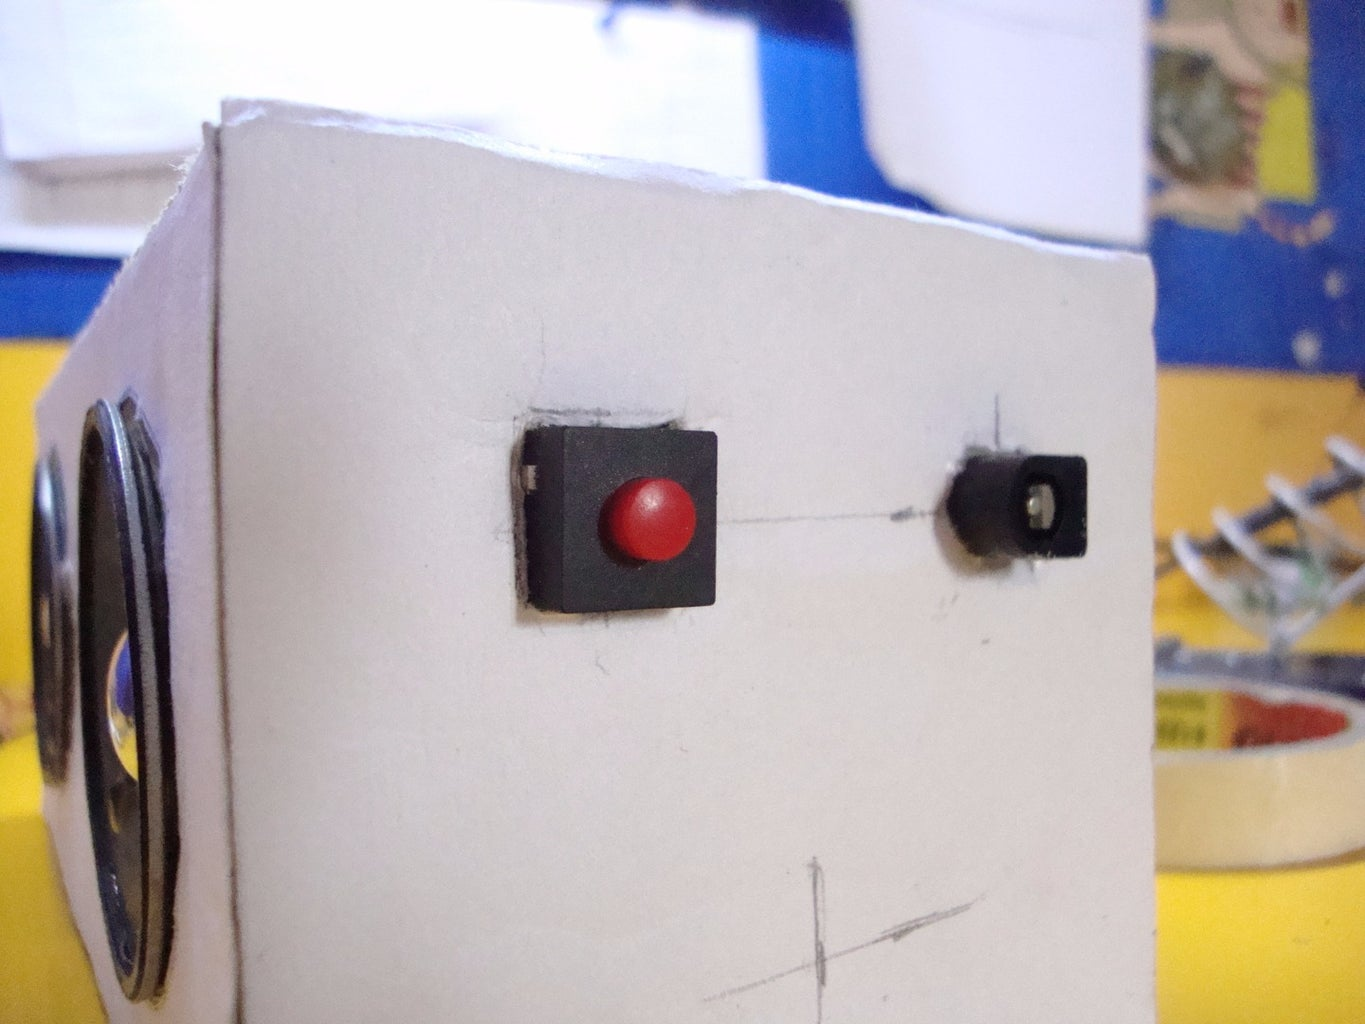 Install and Connect the Toggle Switch